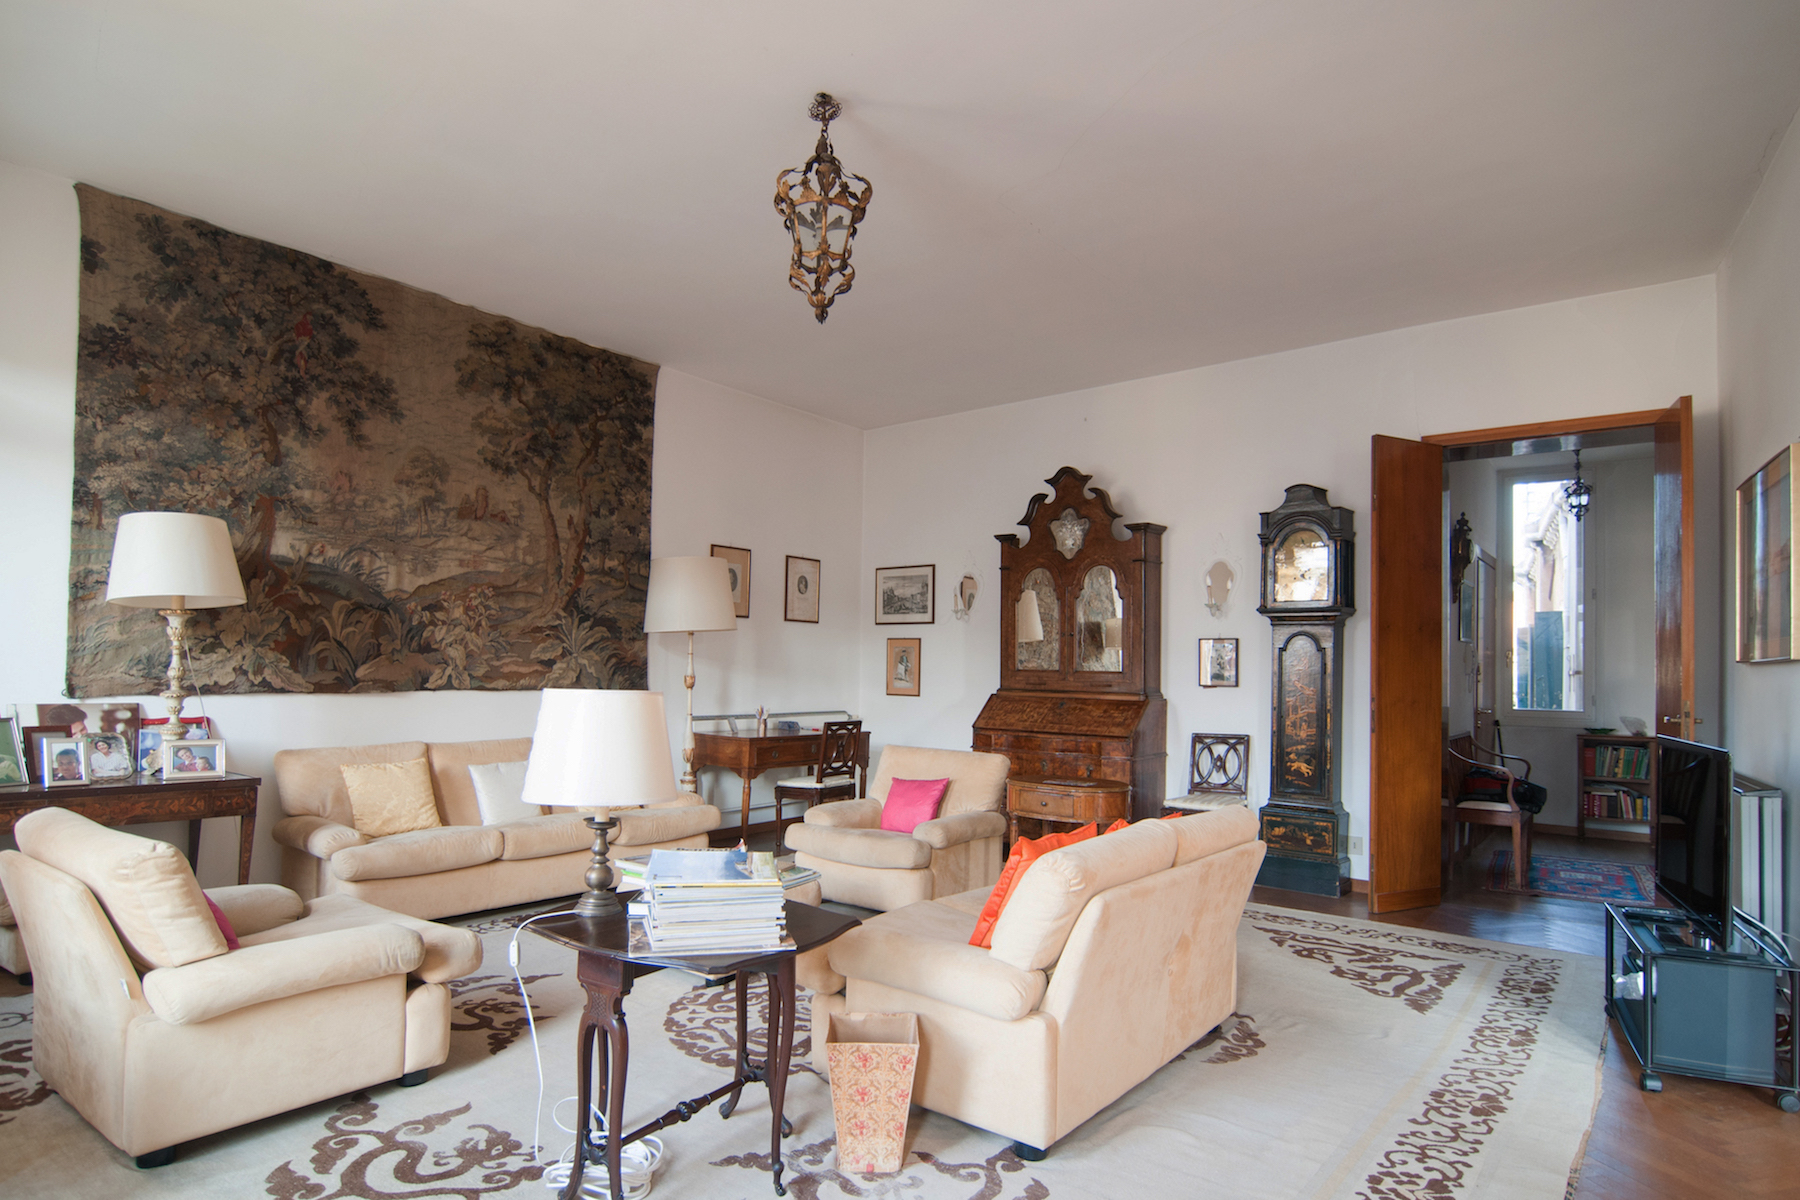 Single Family Home for Sale at Grand Canal Palazzetto top floor apartment with lift and stunning views Venice, Venice Italy